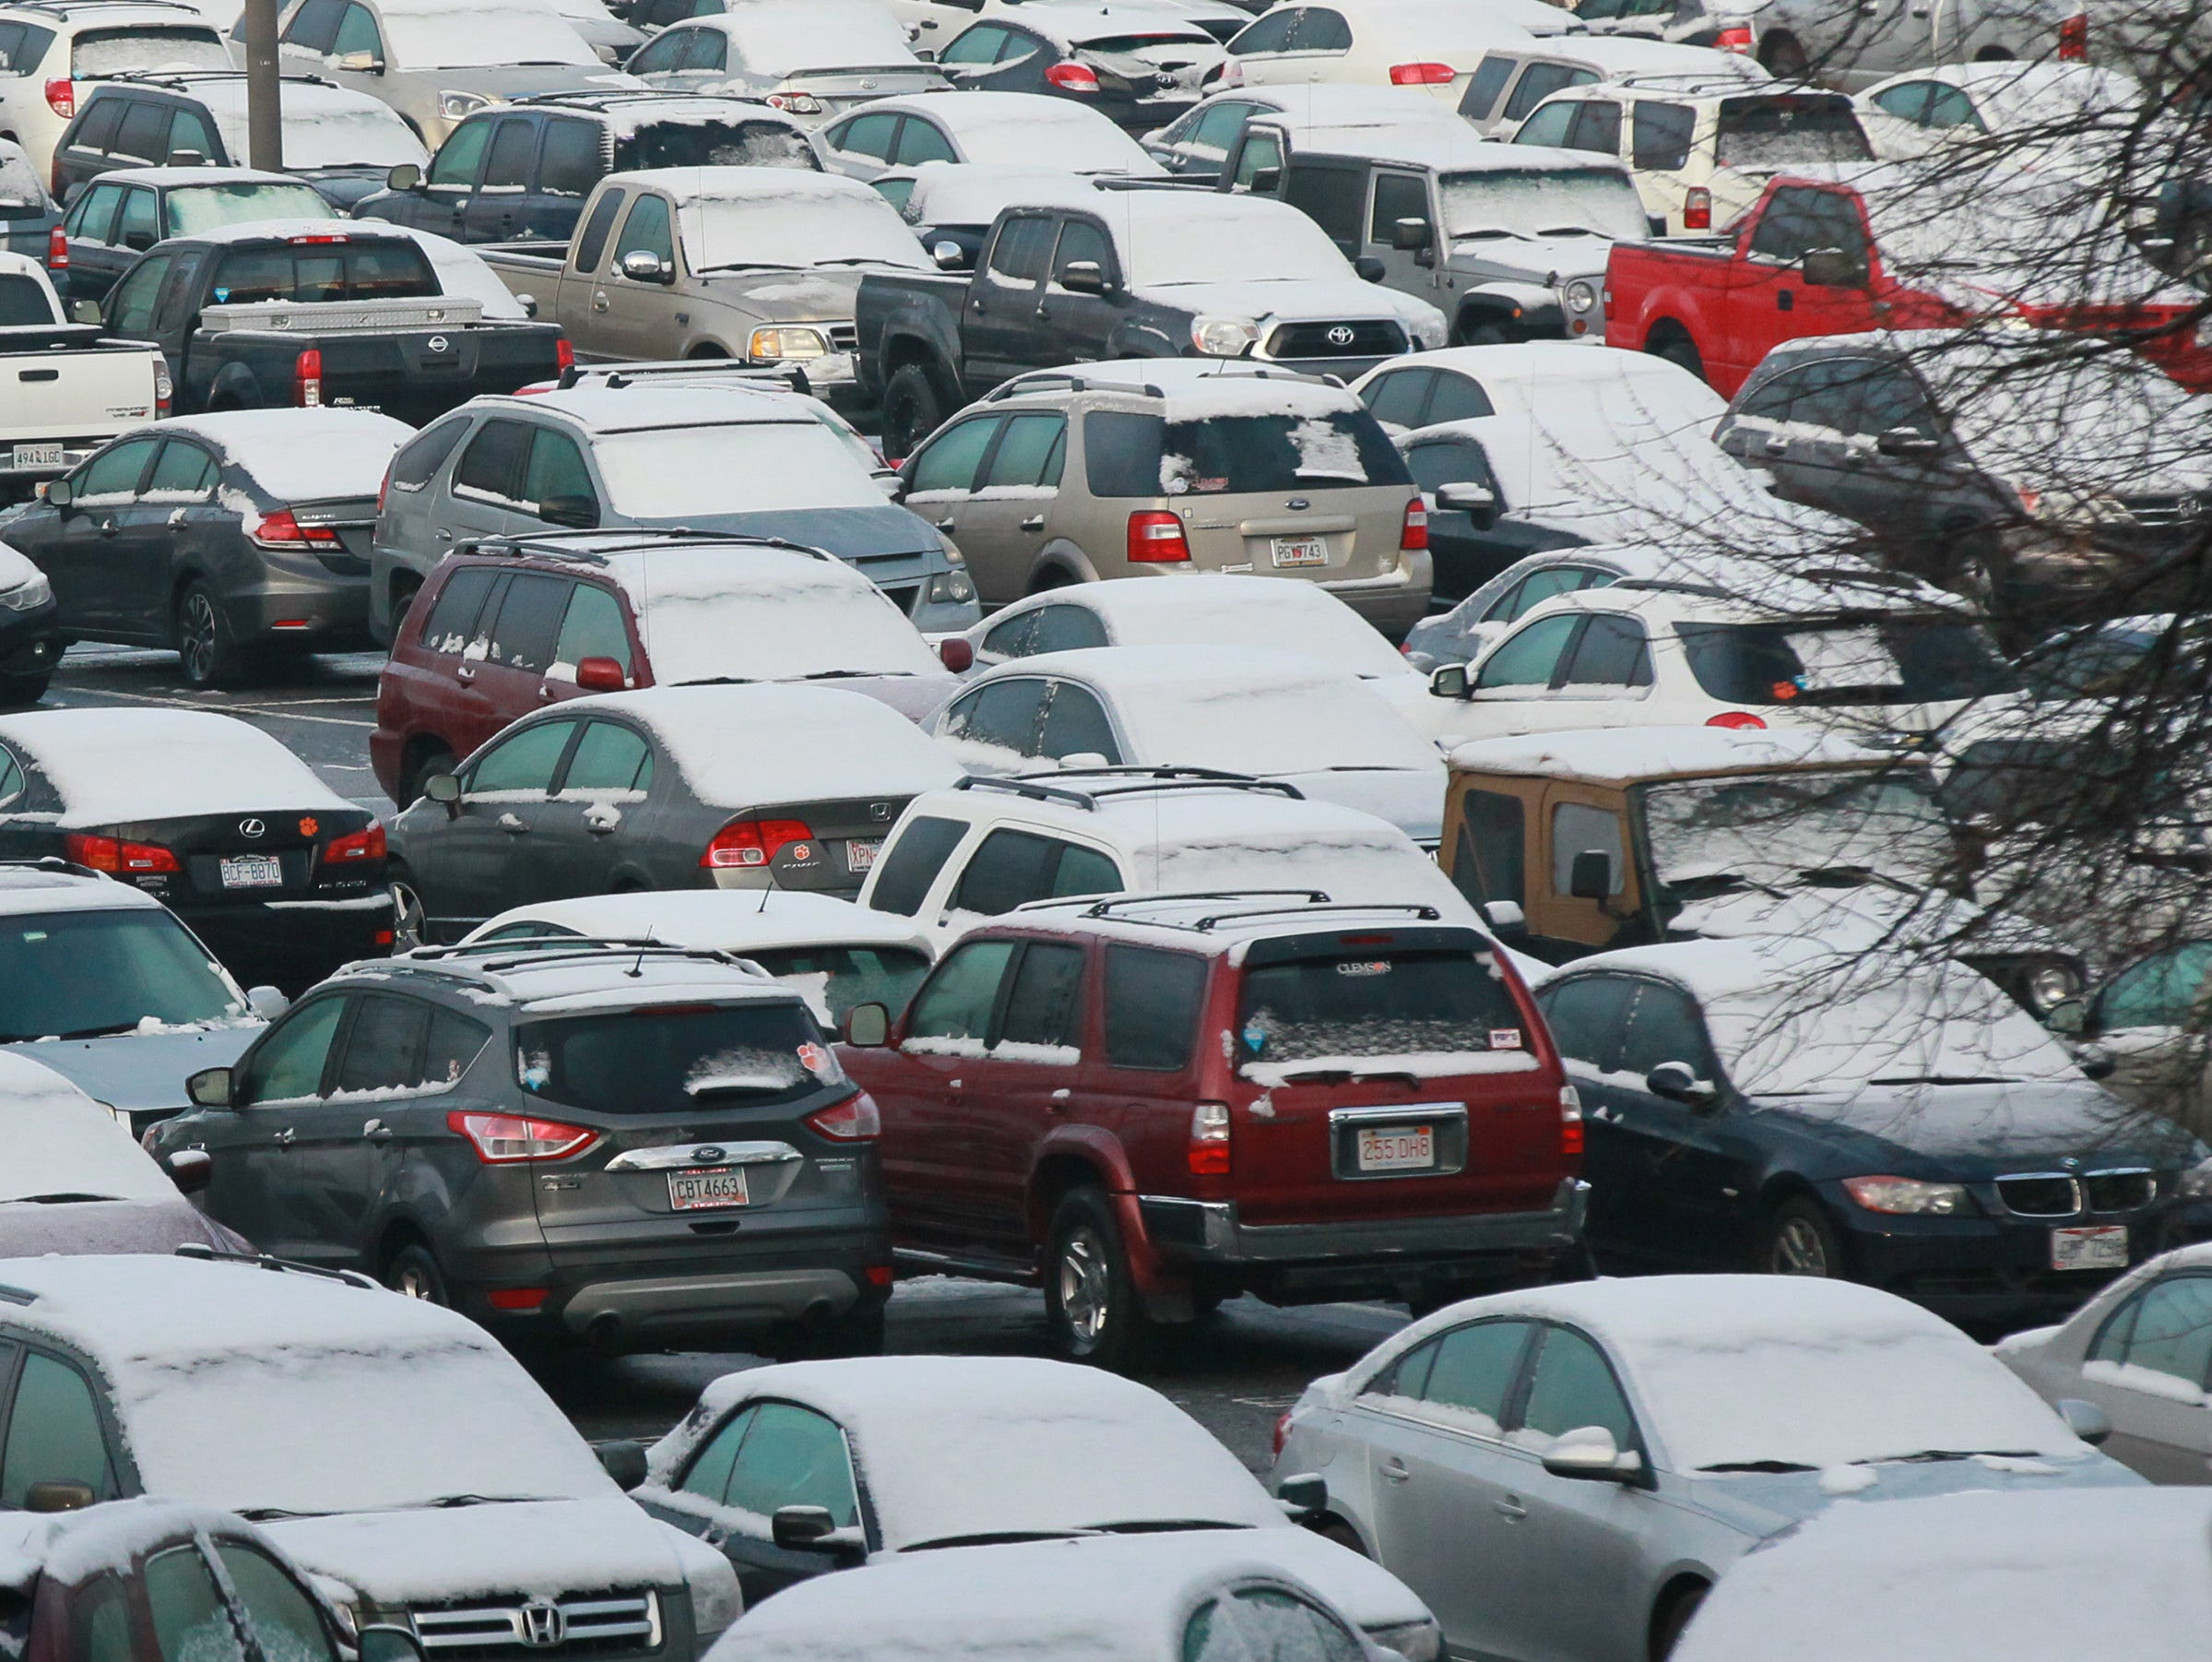 Snow covers student vehicles parked near Memorial Stadium at Clemson University in 2015.